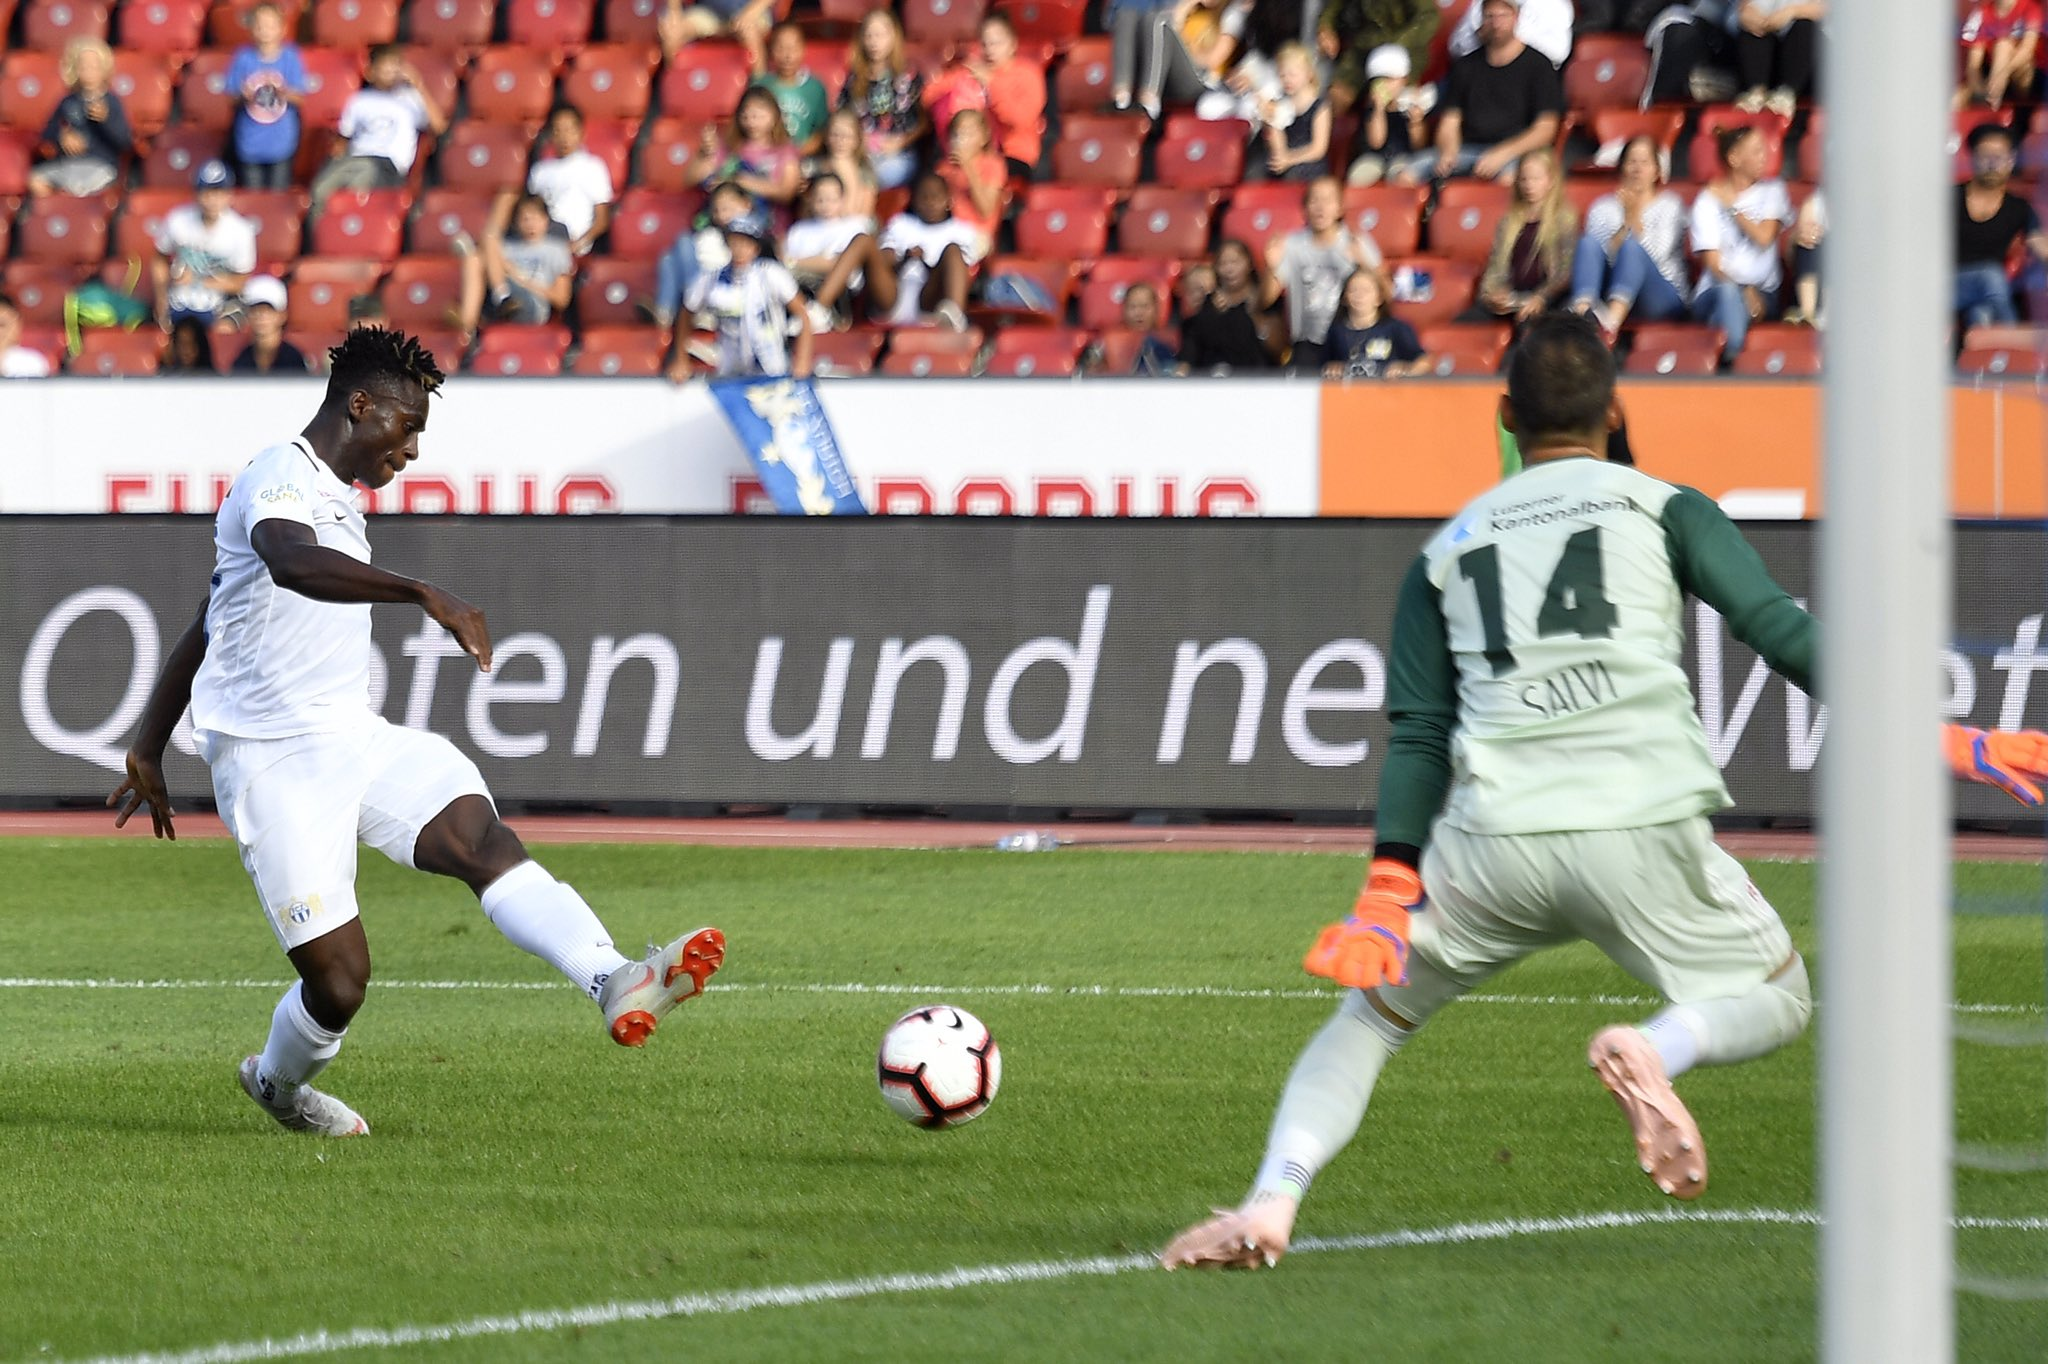 Odey Nets 5th Goal In 8th Game As FC Zurich Pip Luzern